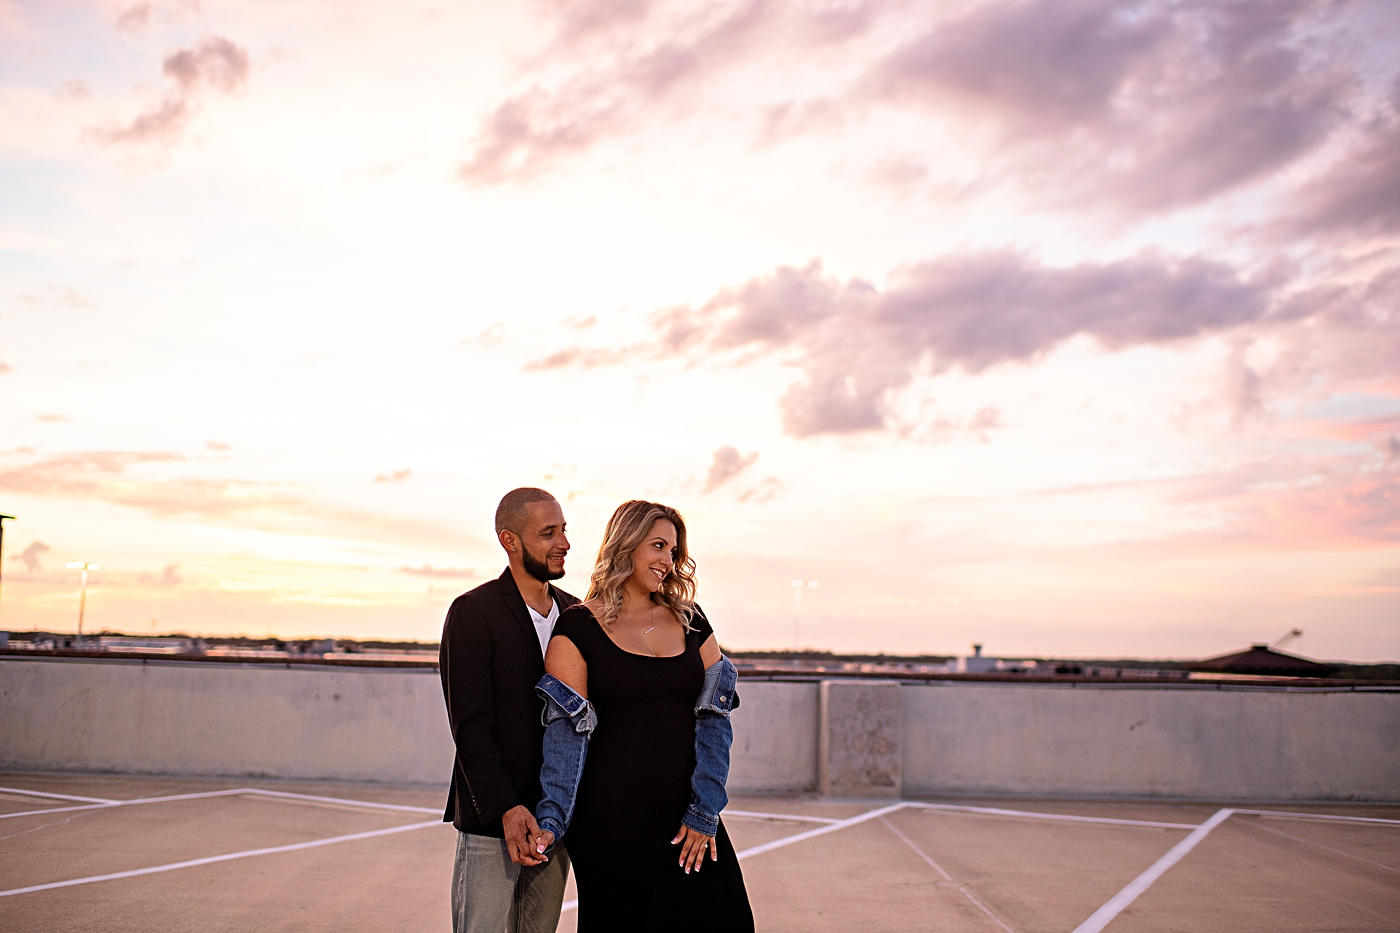 Sunset Rooftop Engagement